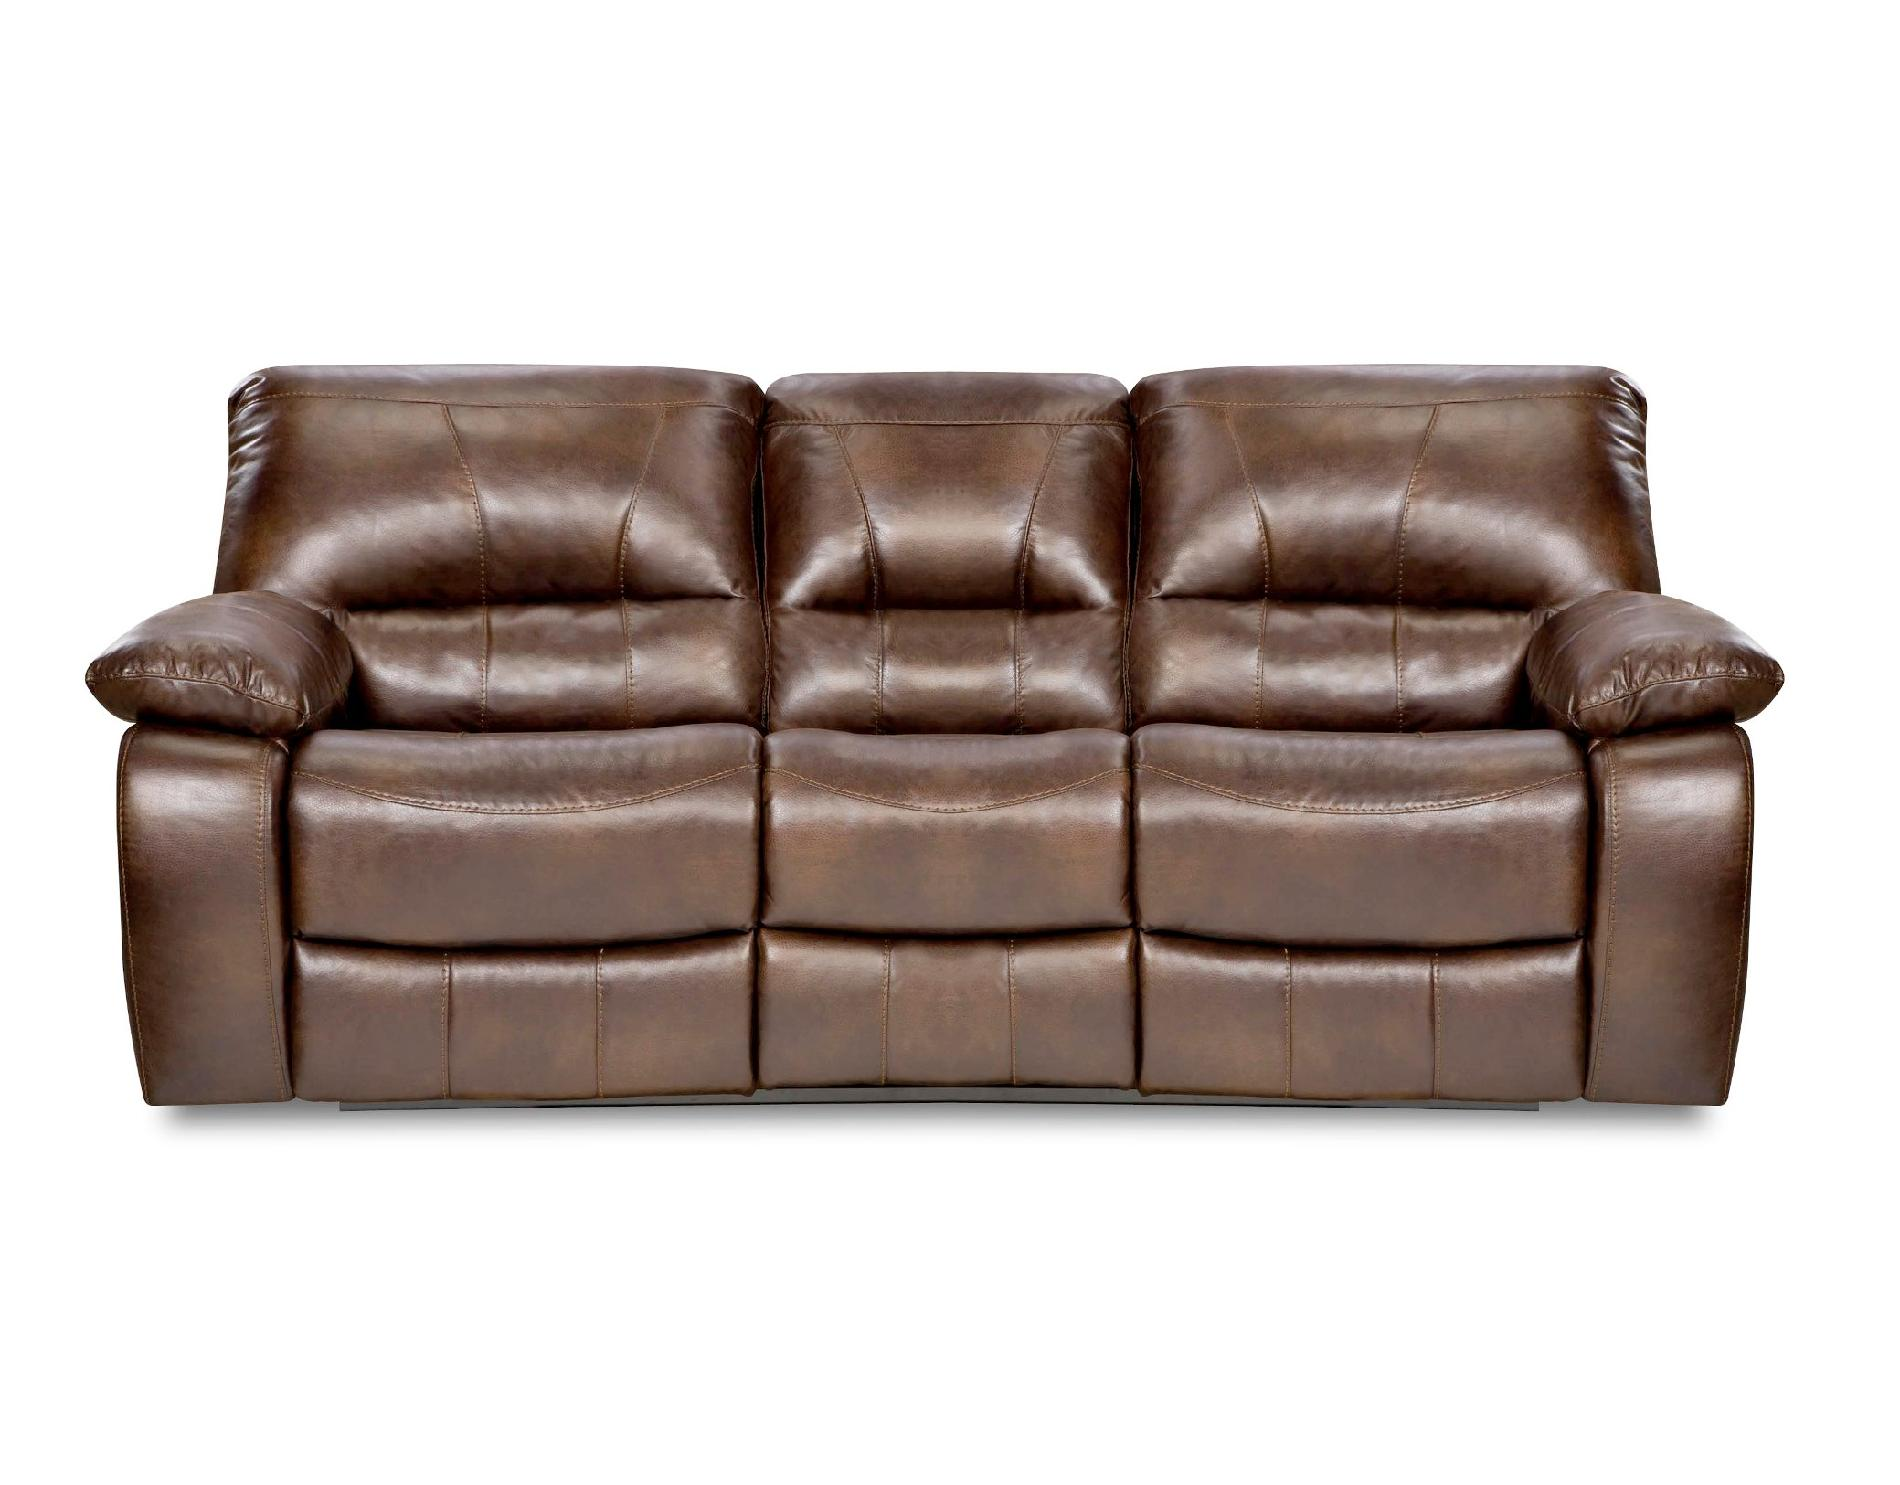 simmons blackjack cocoa reclining sofa and loveseat mart charlotte nc hours chocolate gracia double motion